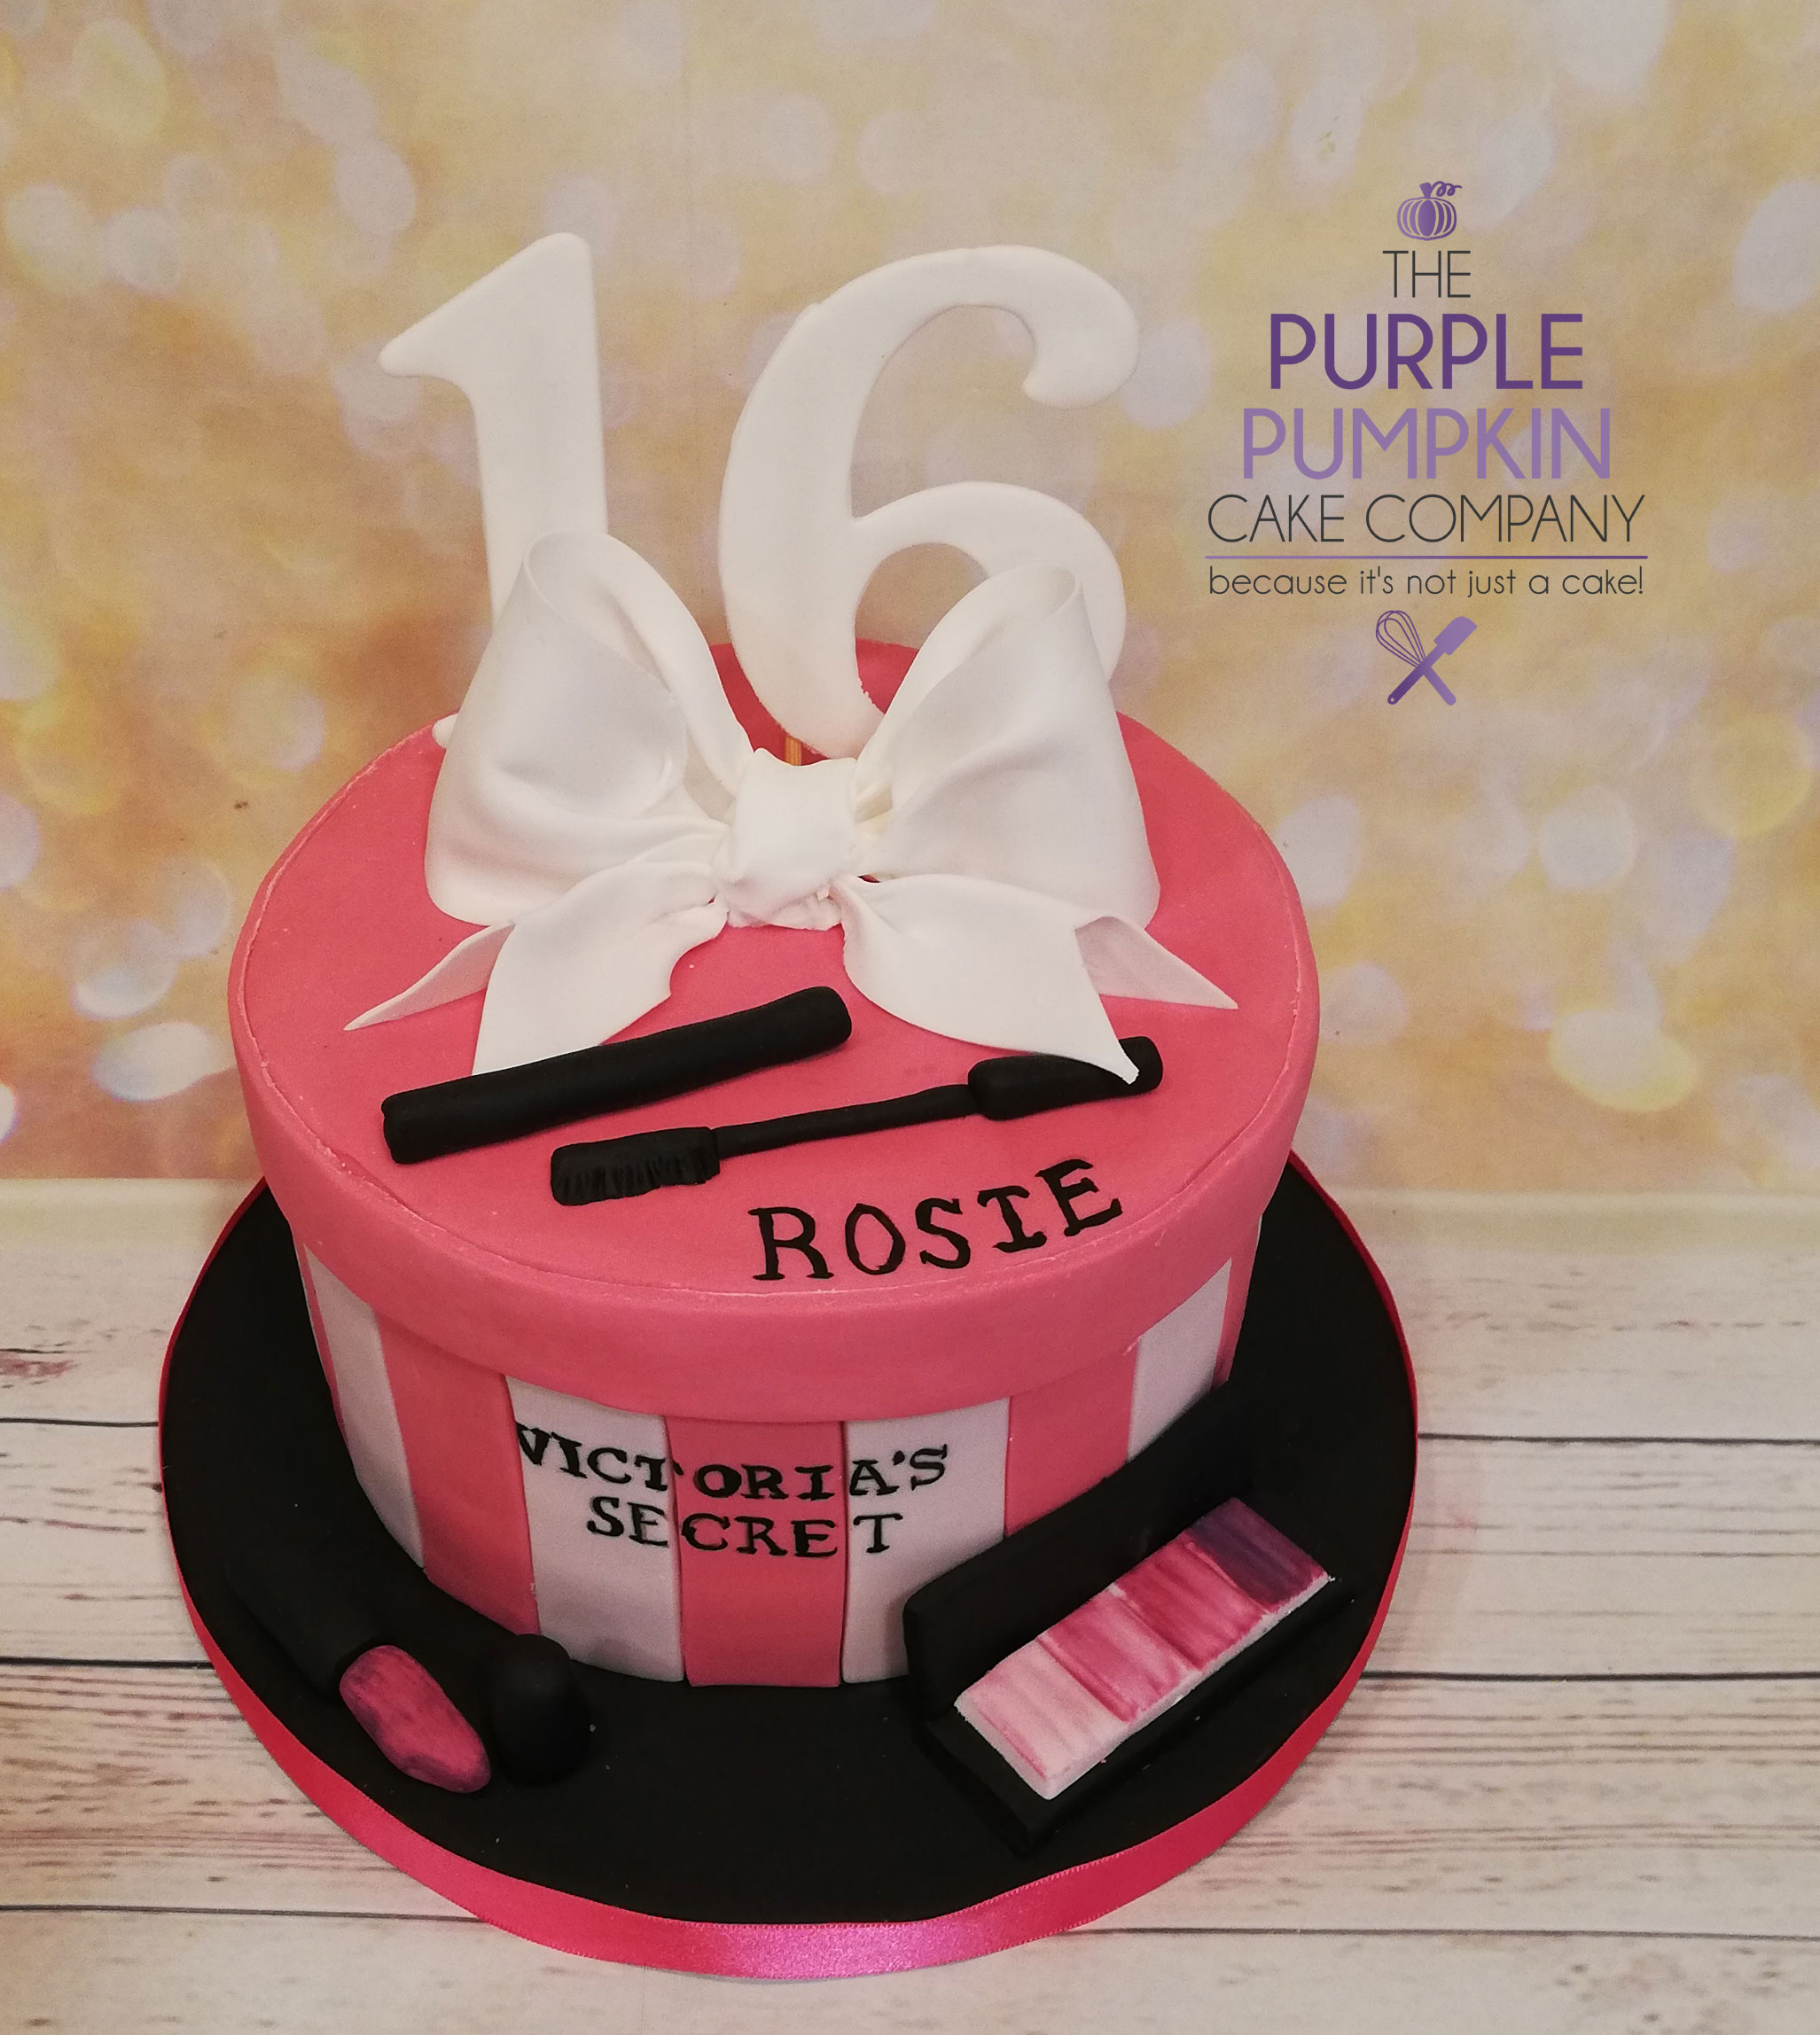 Victorias secret themed cake